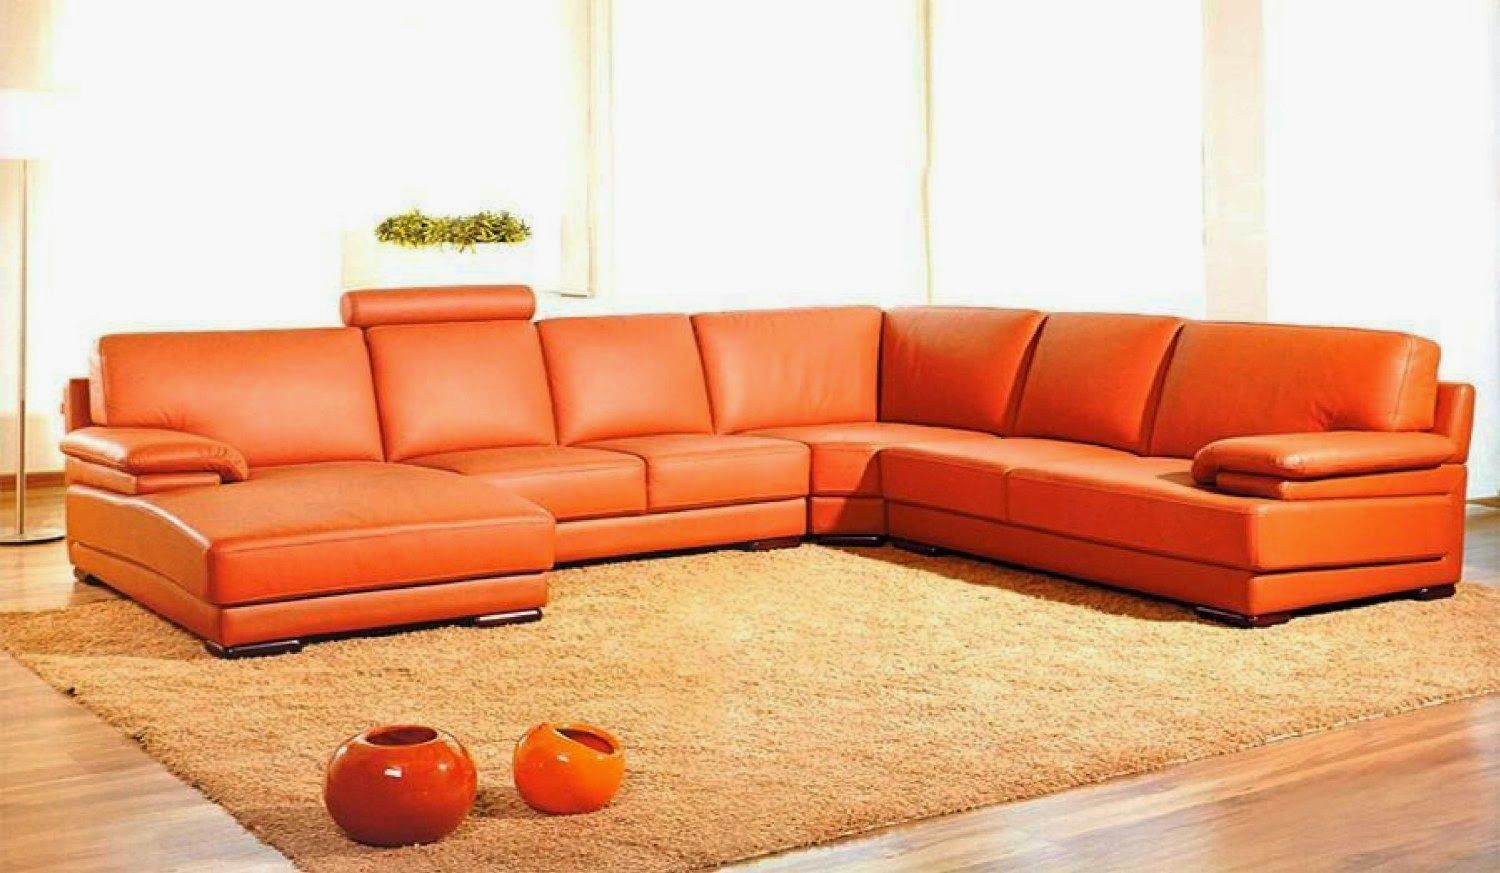 Good-Looking Orange Leather Sofas You Must Have : Charming UShaped ...